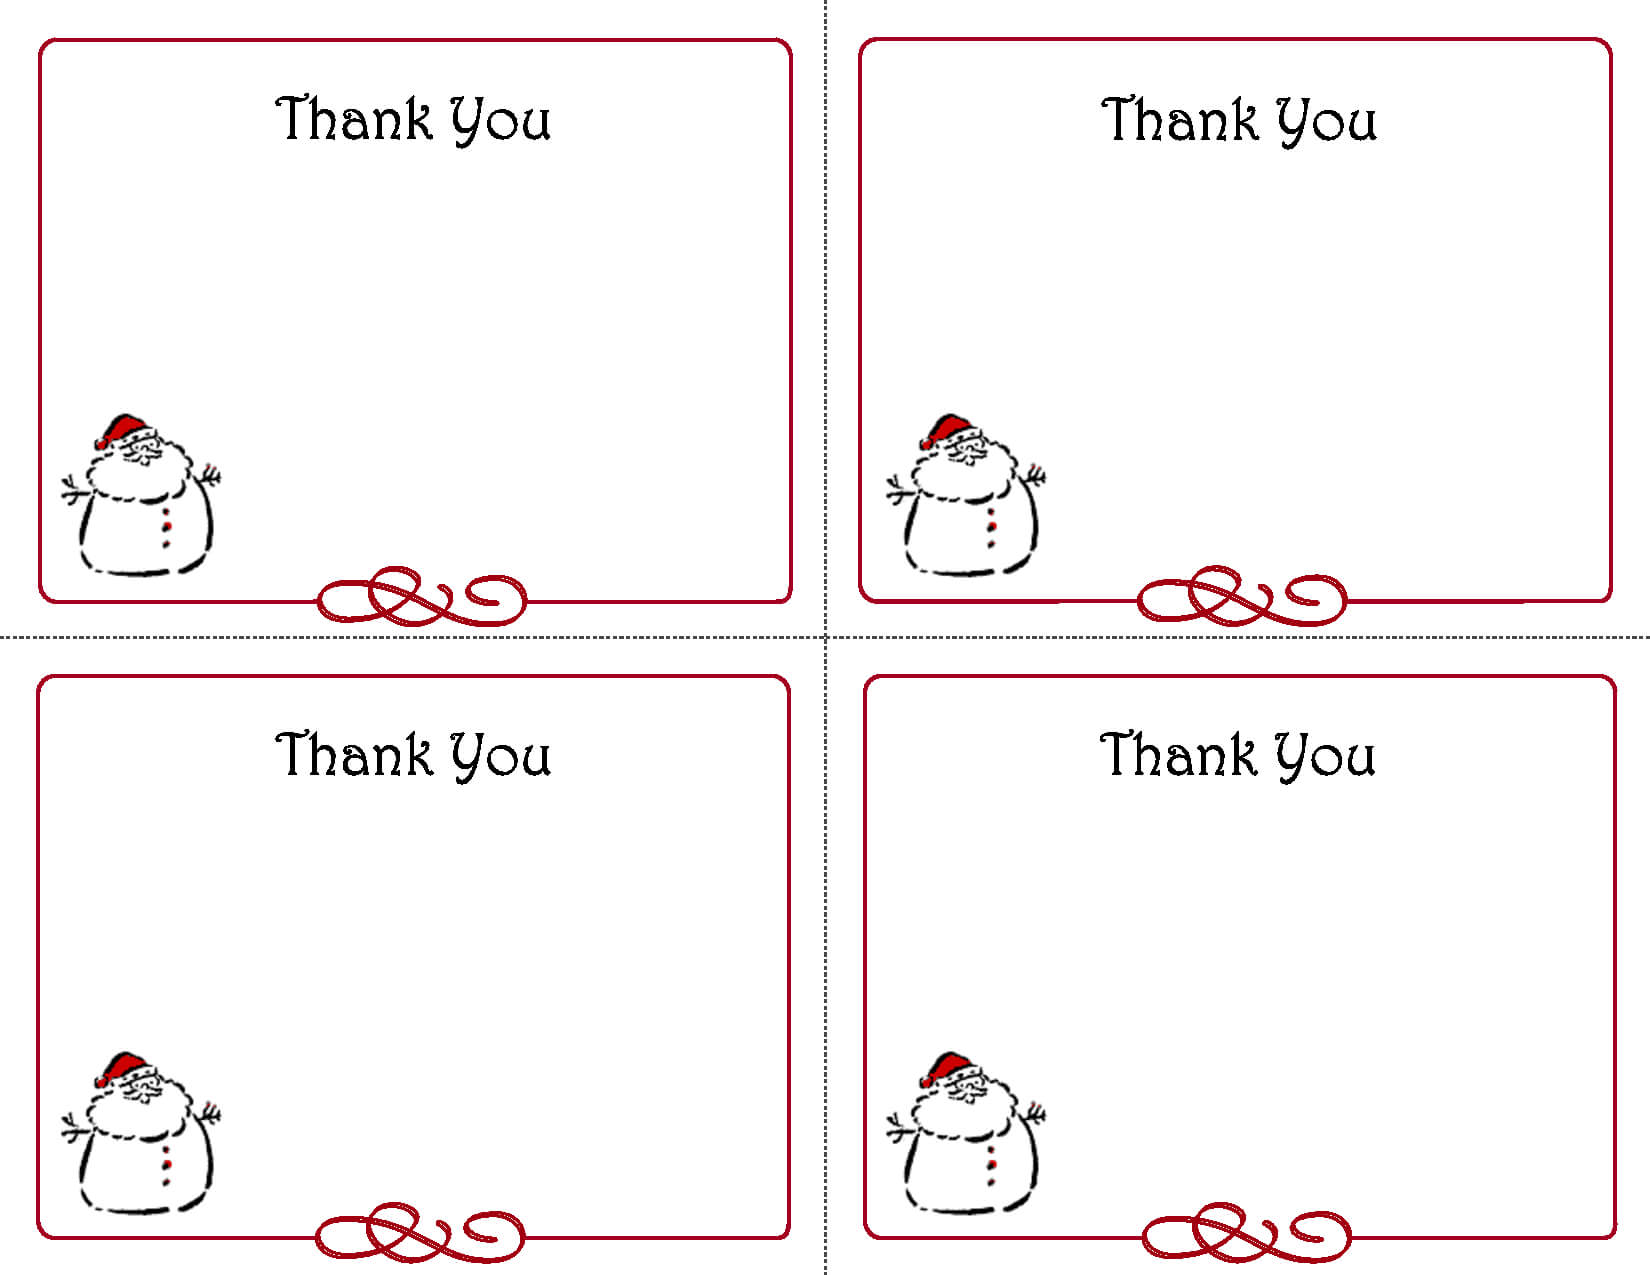 Free Thank You Cards Printable | Free Printable Holiday Gift Within Free Printable Thank You Card Template